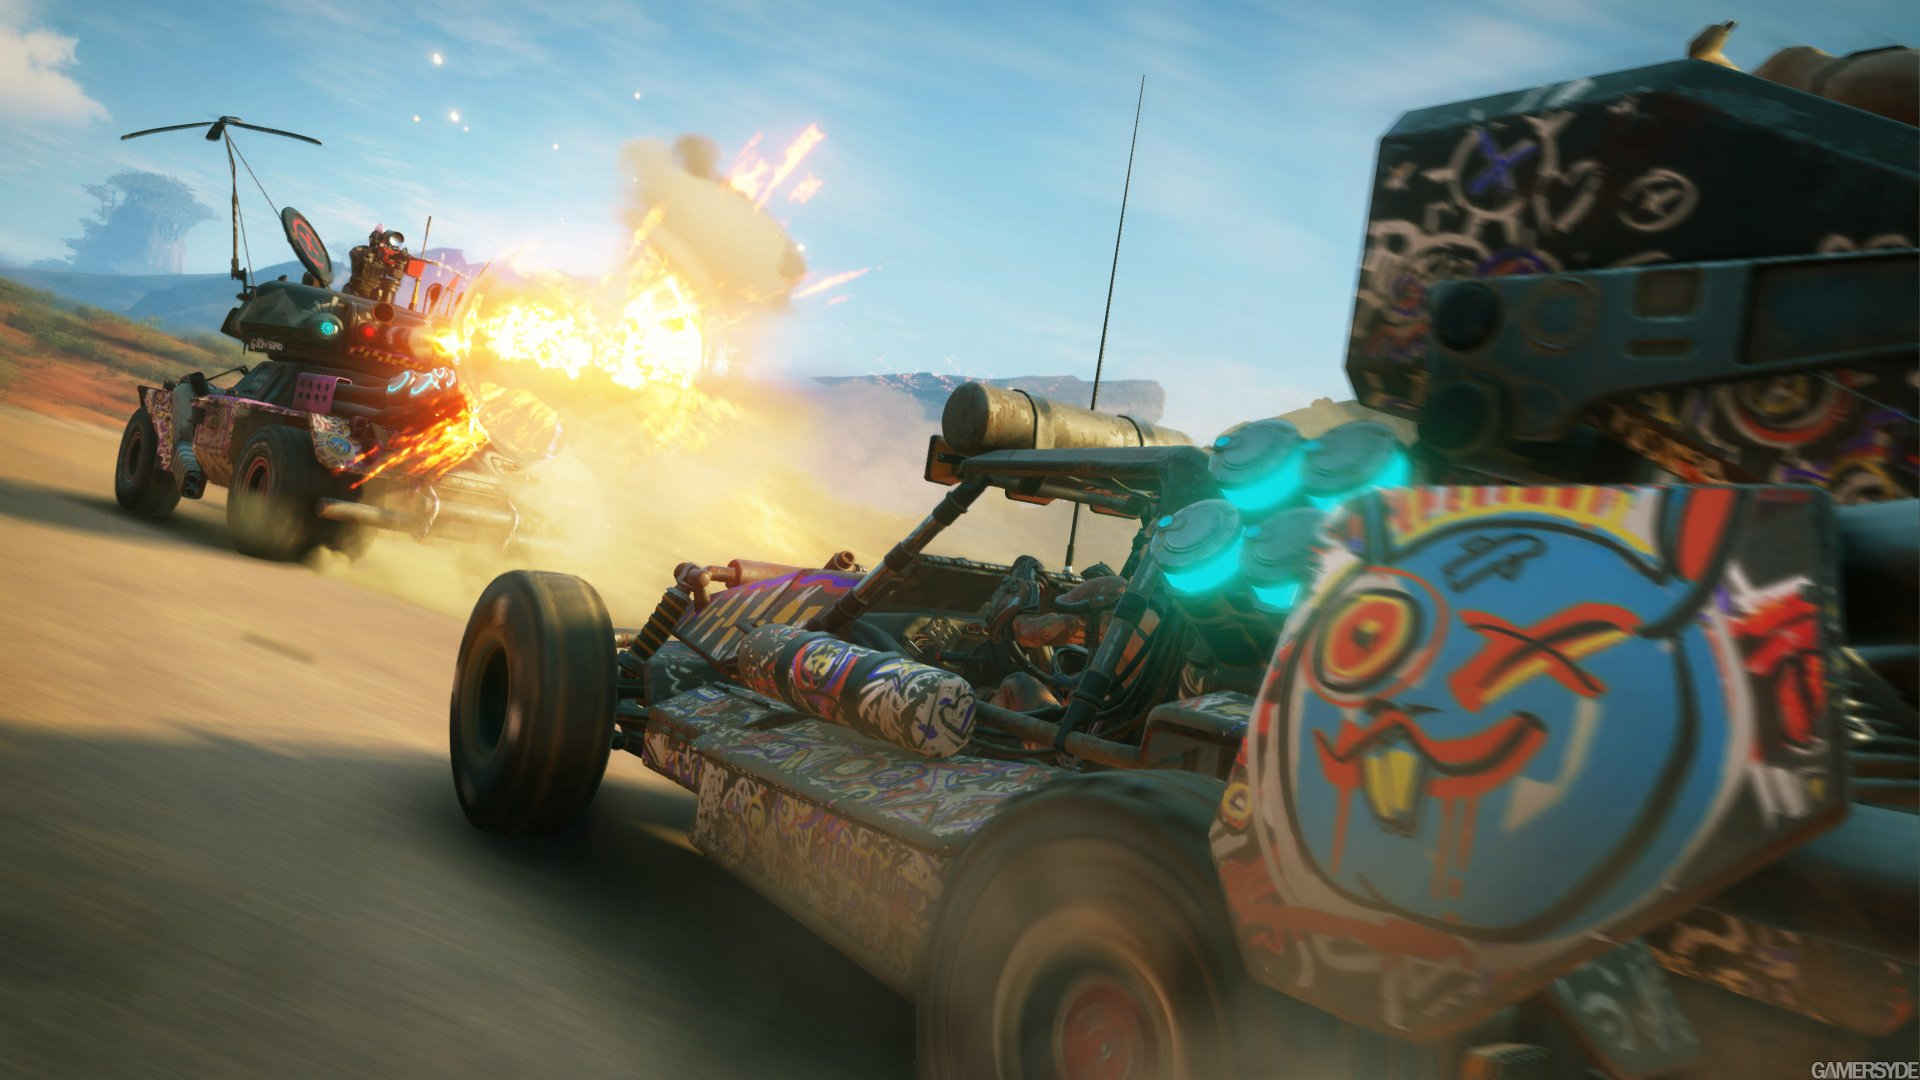 RAGE 2 Let's Talk About 1